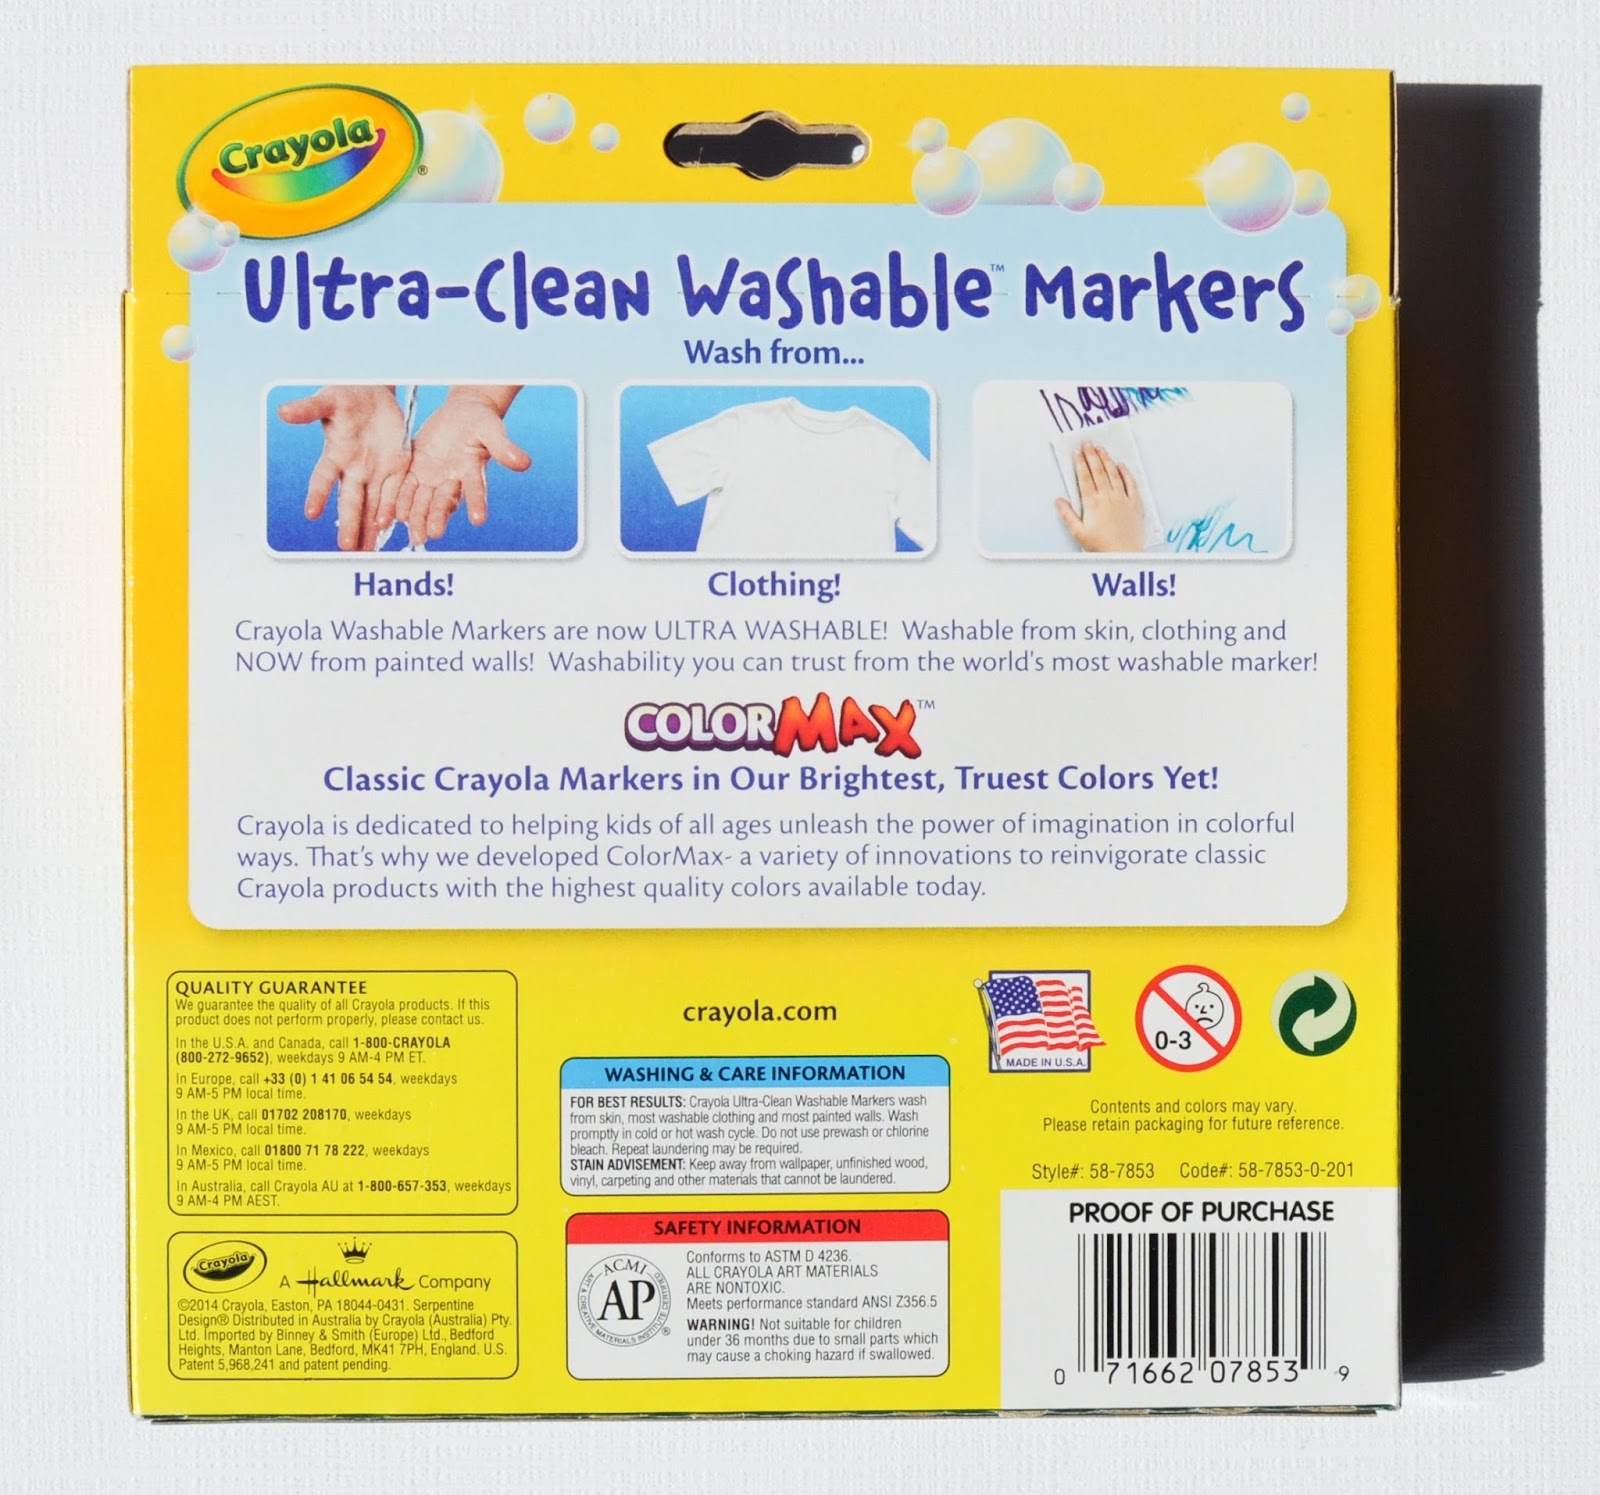 Crayola Ultra Clean Washable Markers Color Max What S Inside The Box Jenny S Crayon Collection